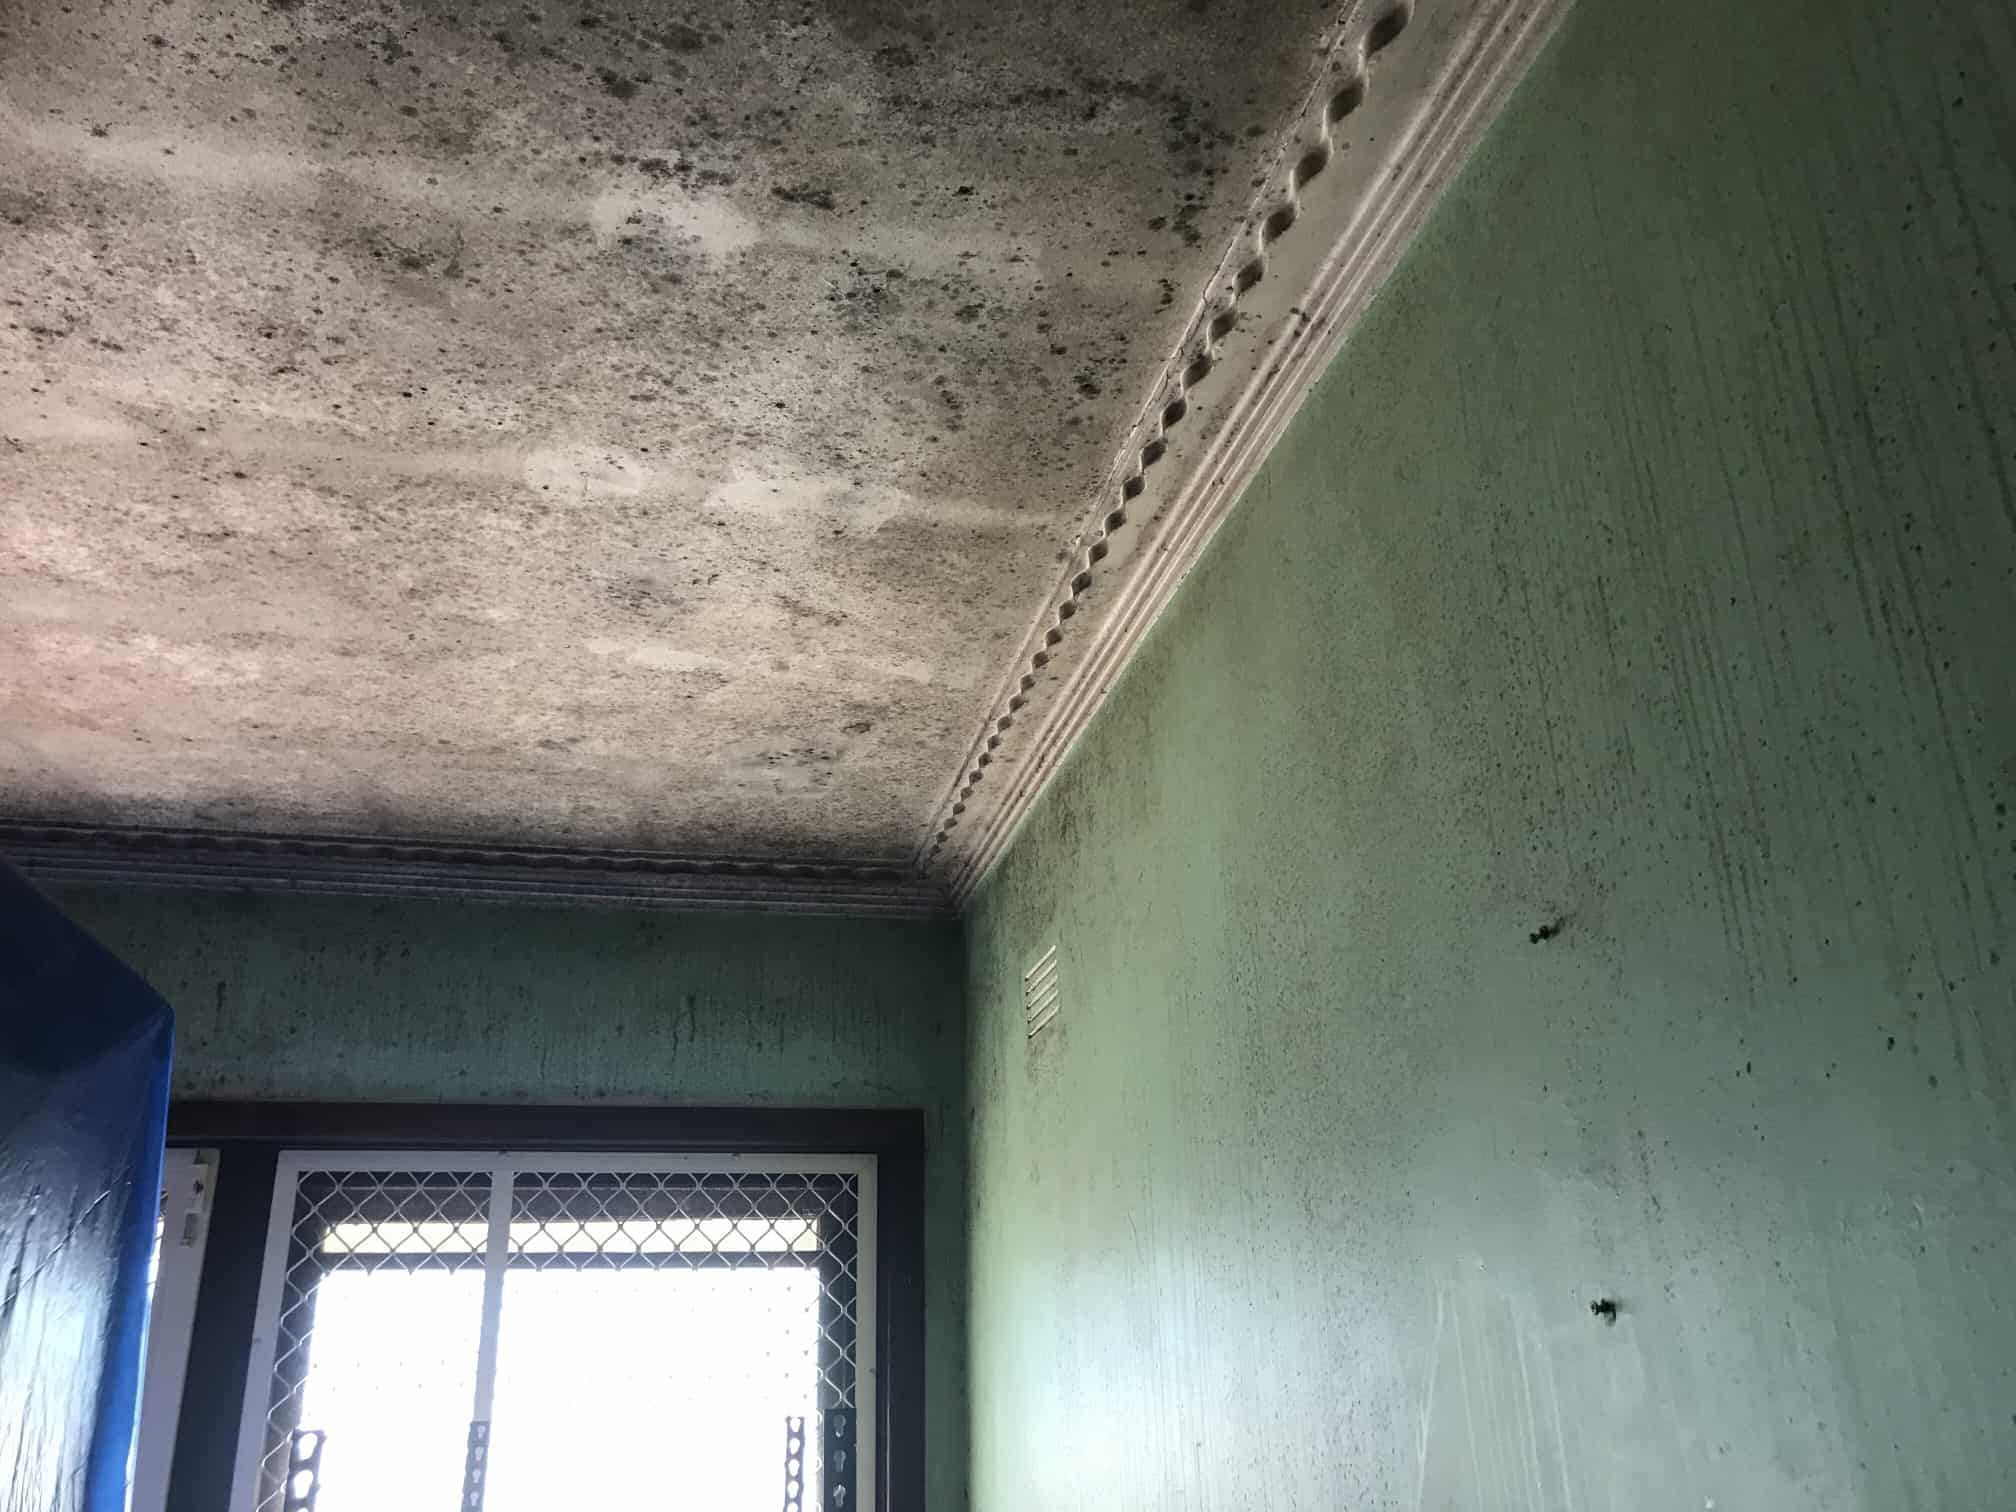 mould infested room with green walls